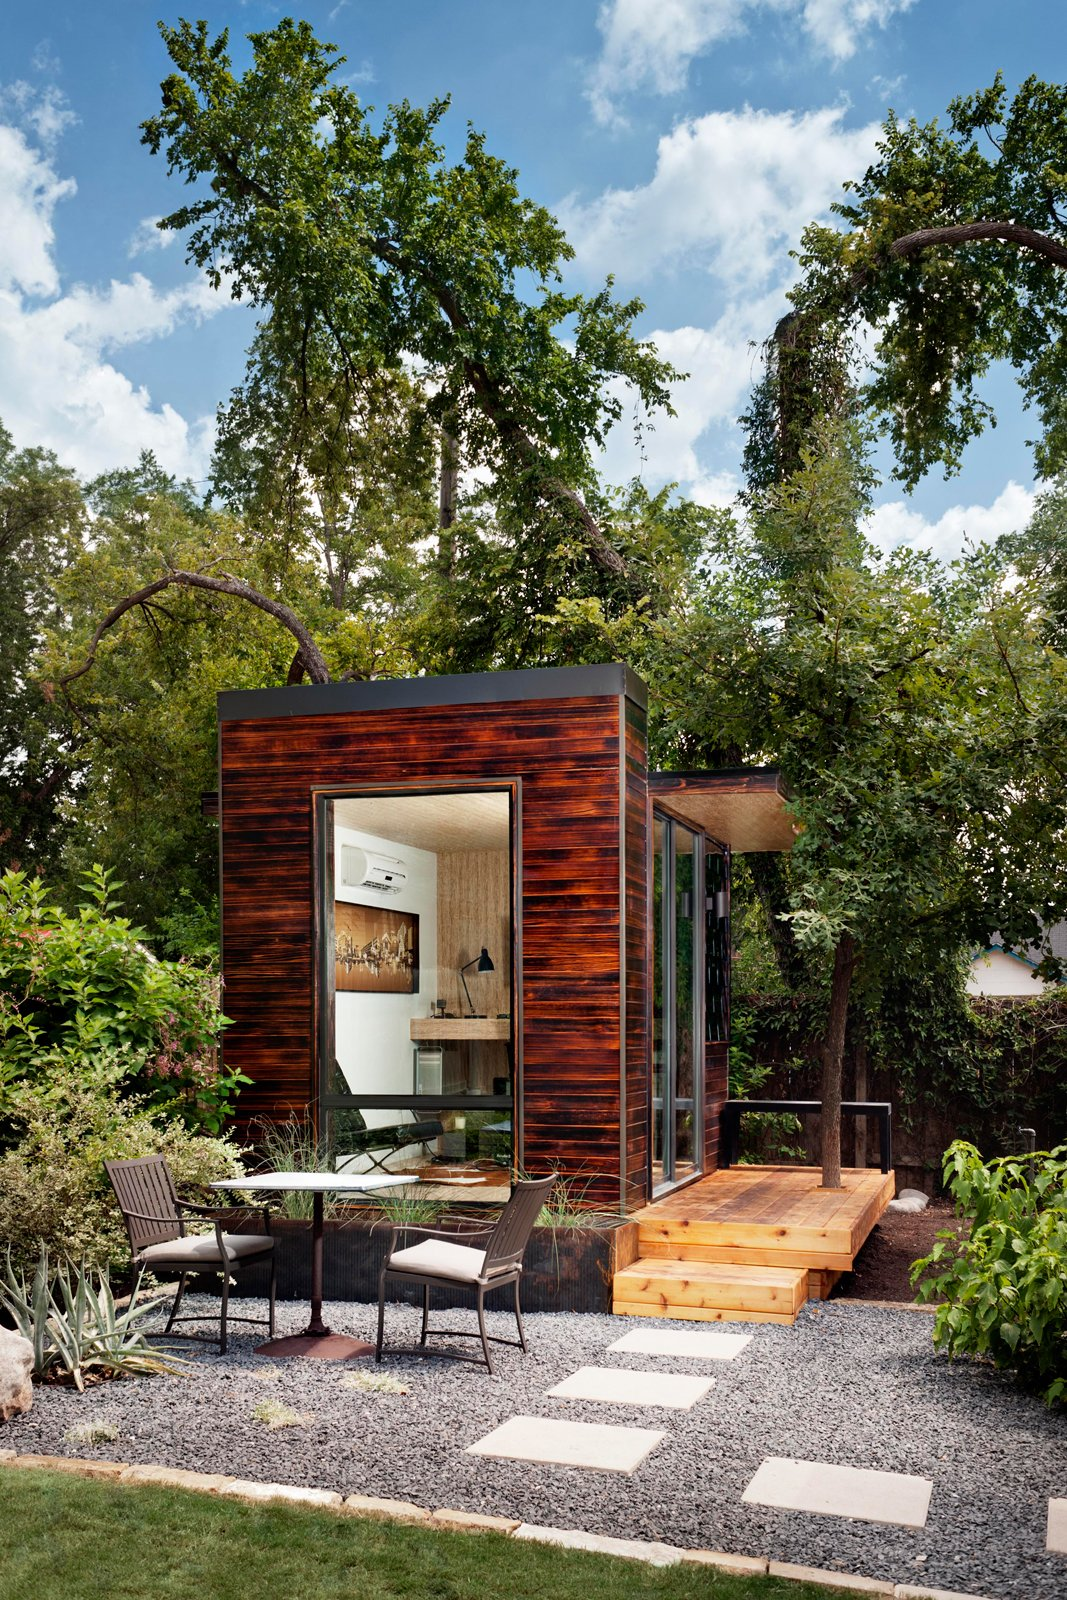 Side Yard, Trees, Shrubs, Small, Hardscapes, Wood, Decking, and Shed & Studio With little to no permitting required, Sett Studio units can be used for an extra bedroom, a yoga studio, a hydroponics growing area or an office space, like this 96-square-foot one shown here.  Best Shed & Studio Hardscapes Trees Photos from On Your Mark, Get Sett